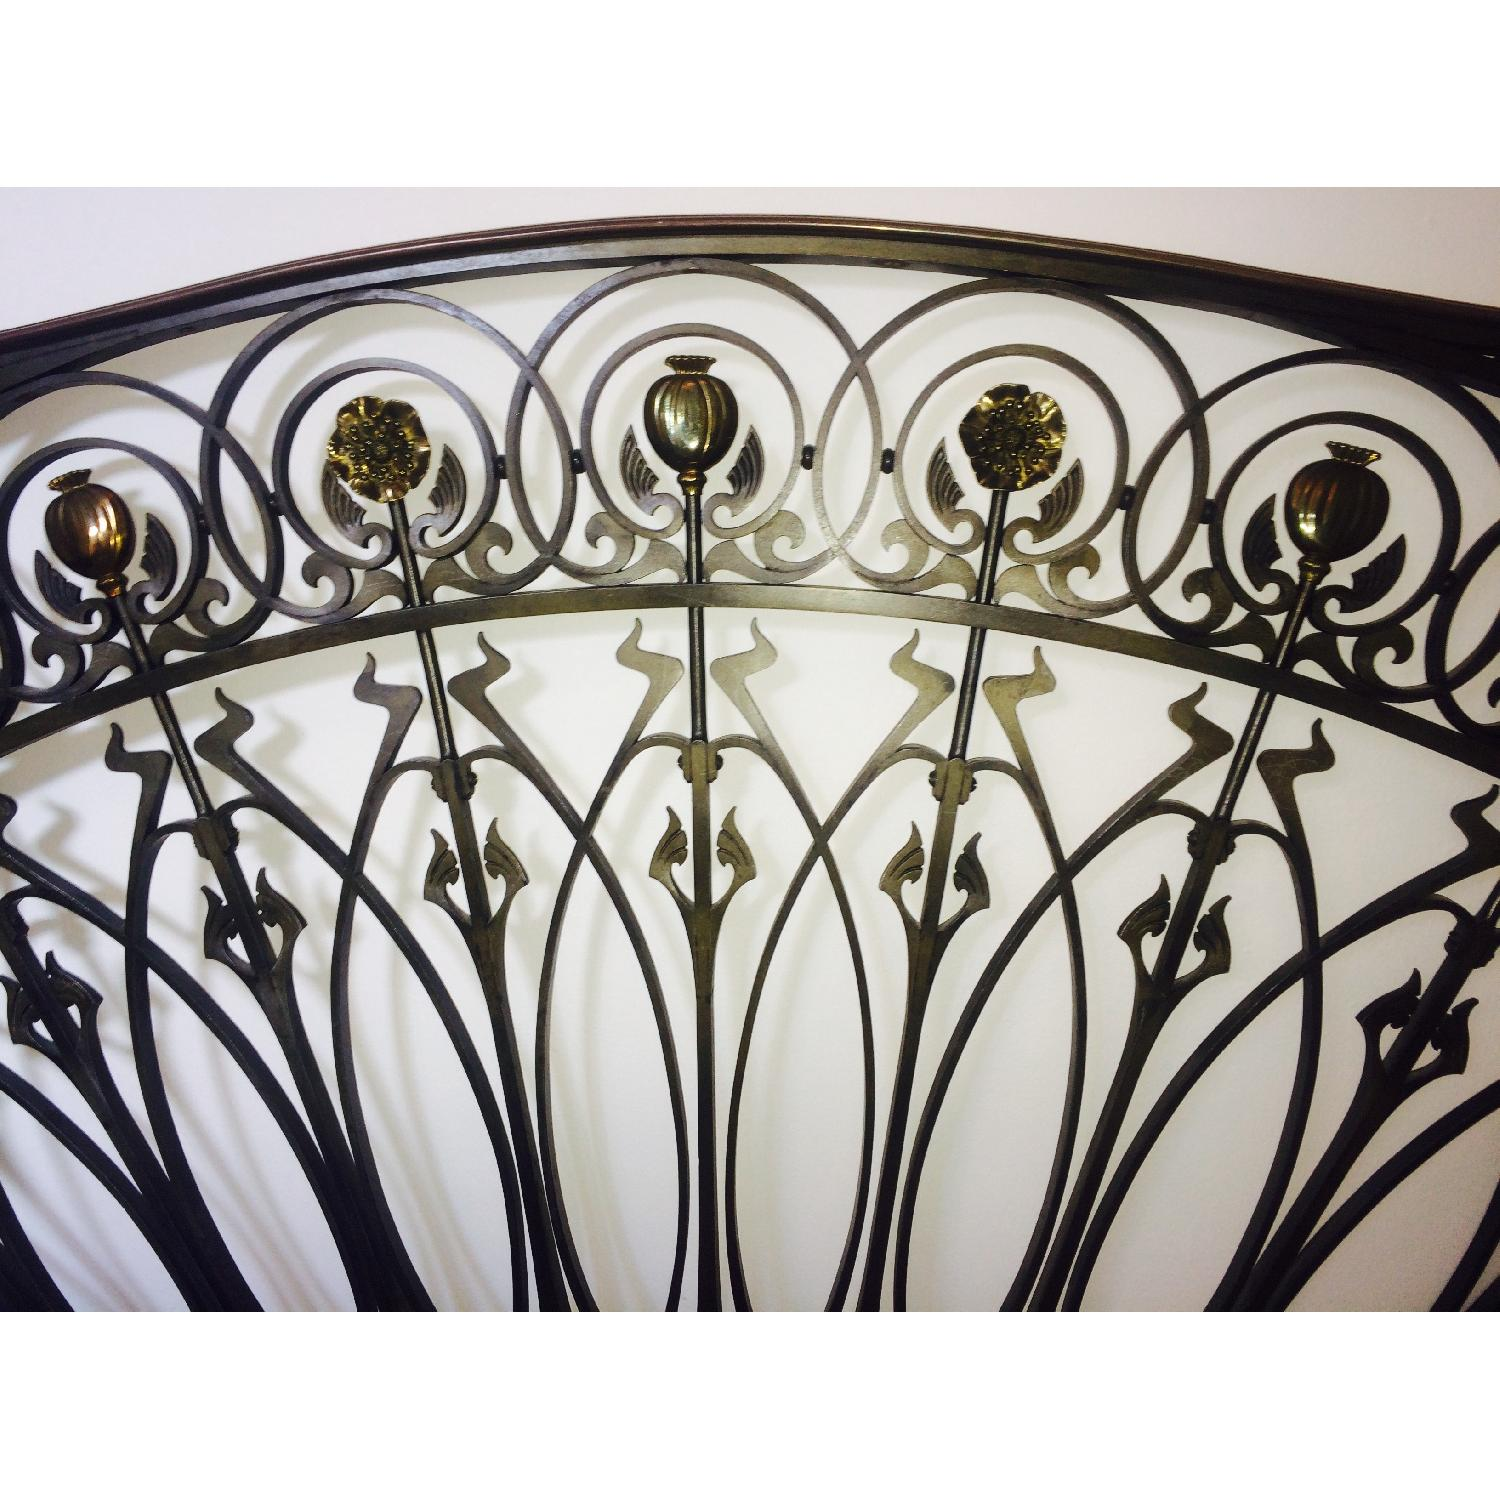 Early 20th-Century French Art Nouveau Wrought Iron and Gilt Bronze Headboard - image-2